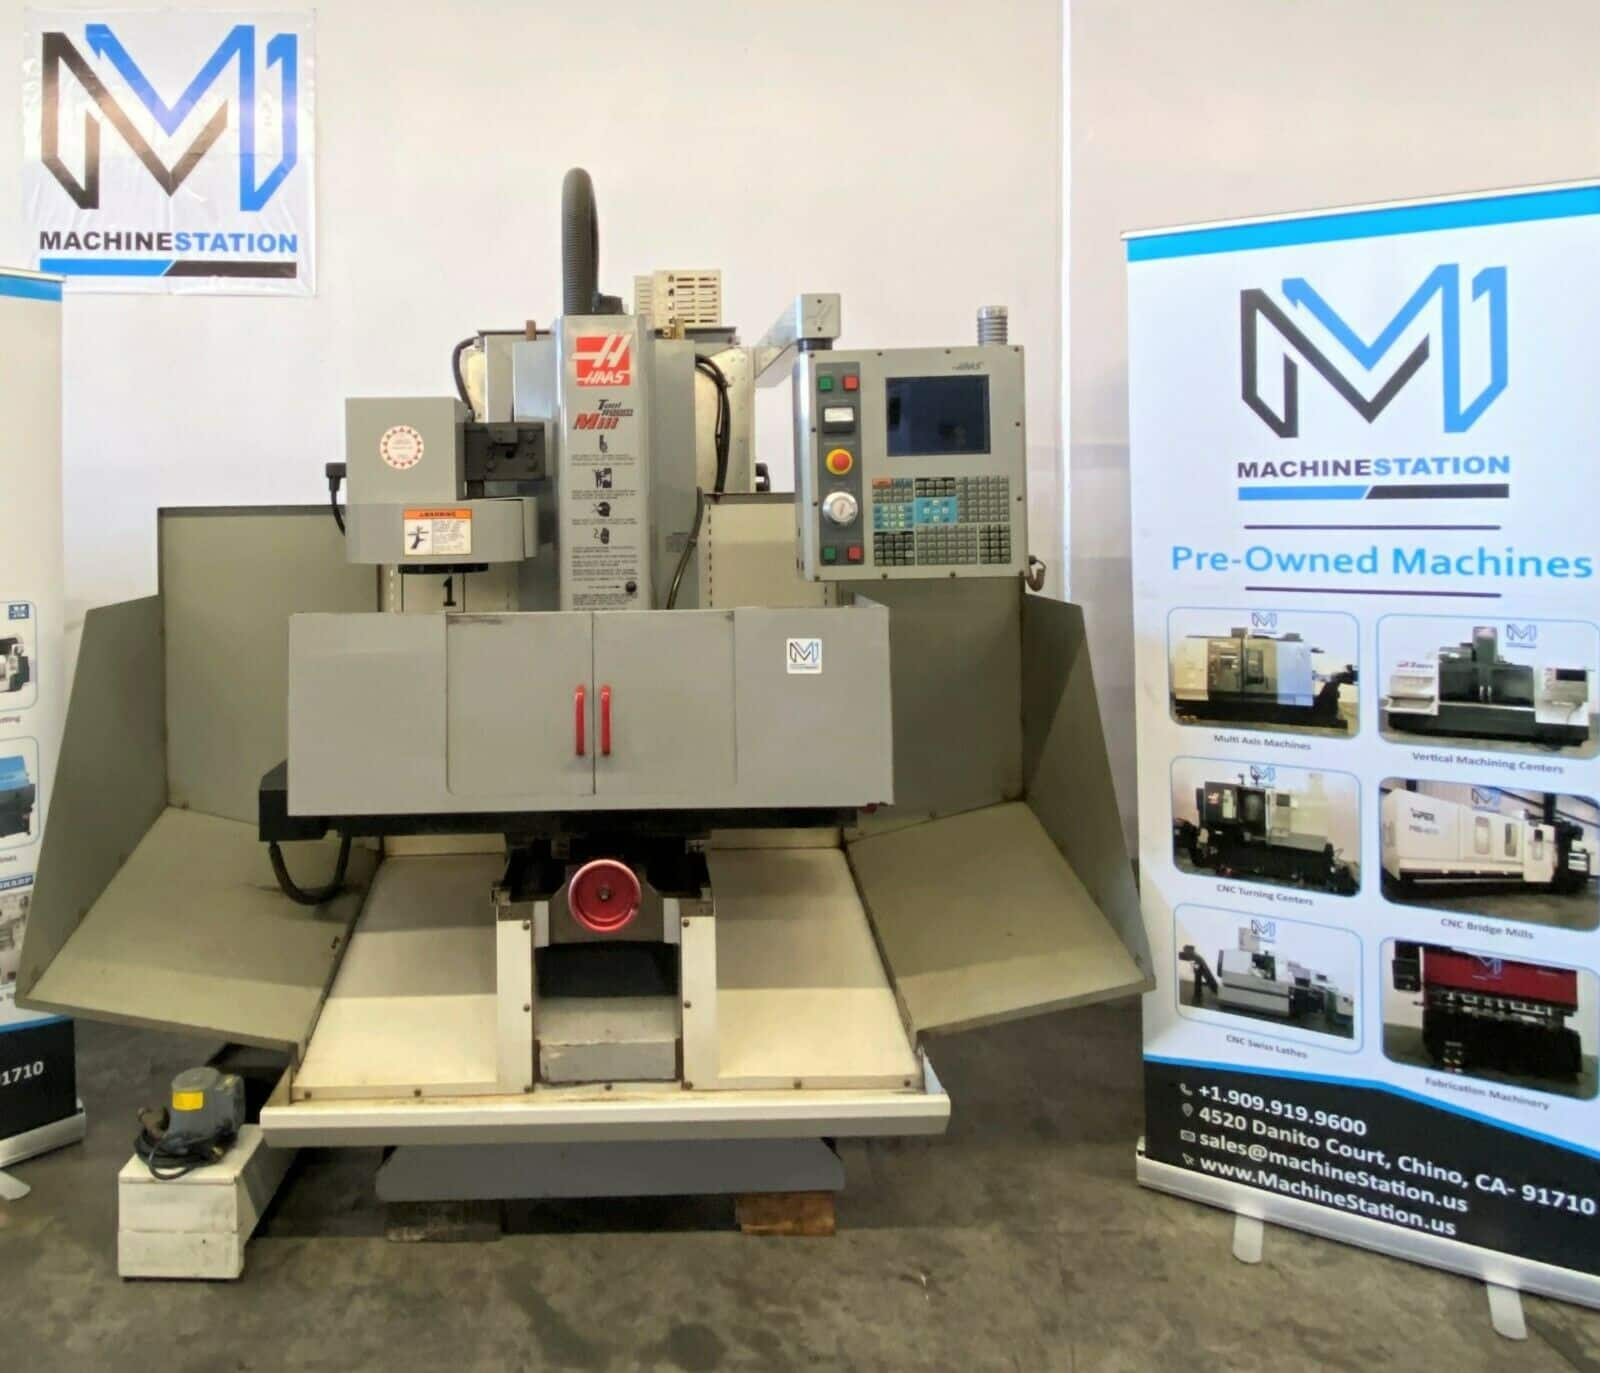 HAAS TM-1 Tool Room CNC Mill for Sale in California (1)